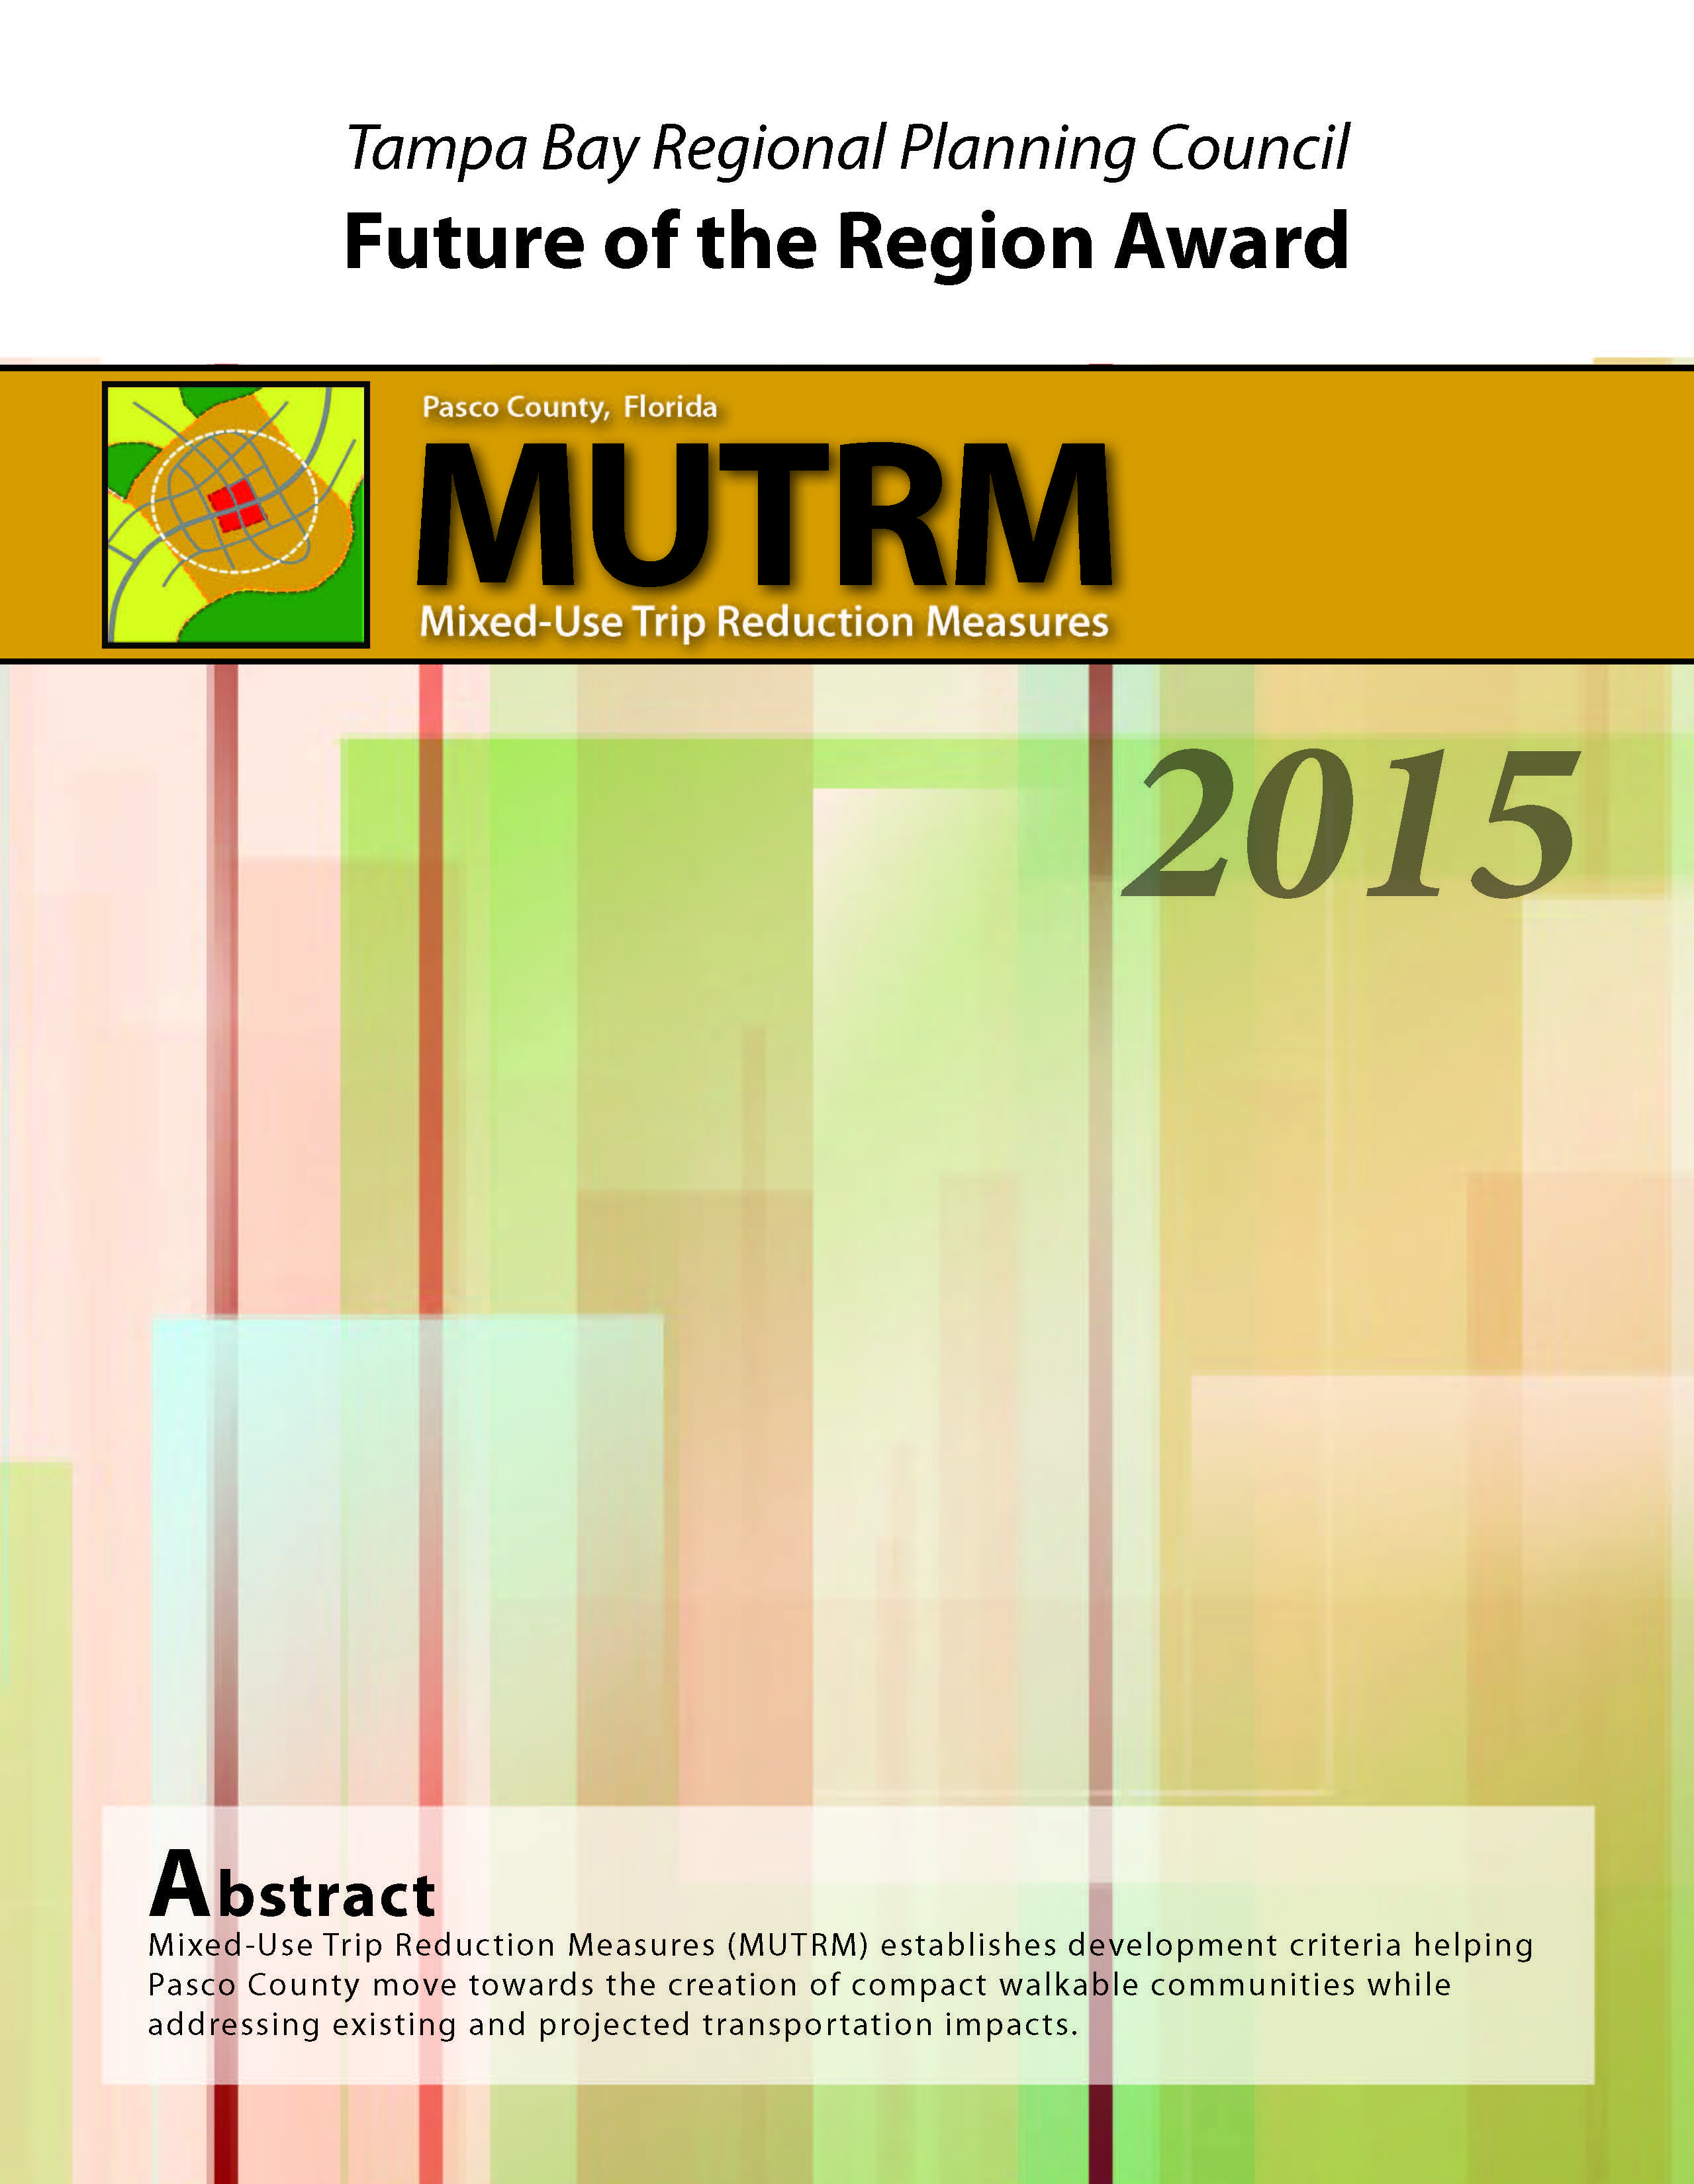 MUTRM Future of the Region Award